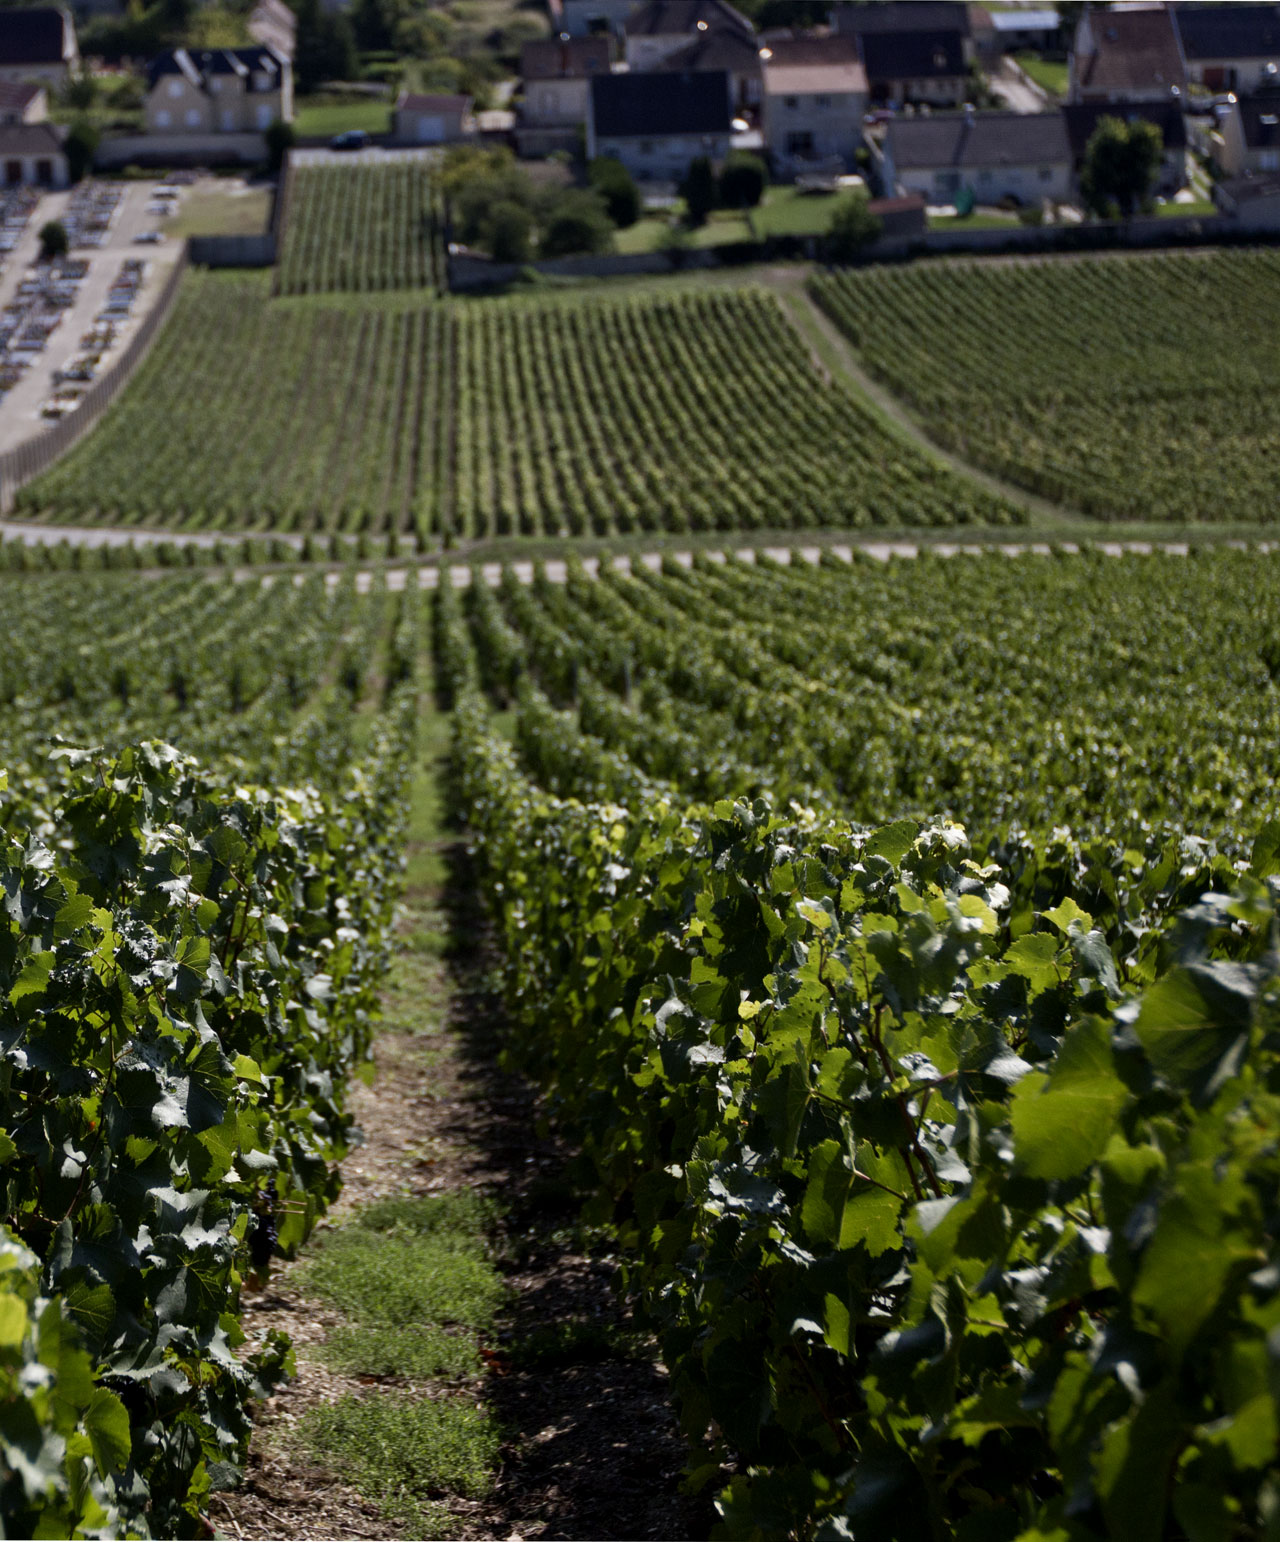 Dom Pérignon 'Pinot noir' vineyards in the Champagne region of France. Photo by Costas Voyatzis for Yatzer.